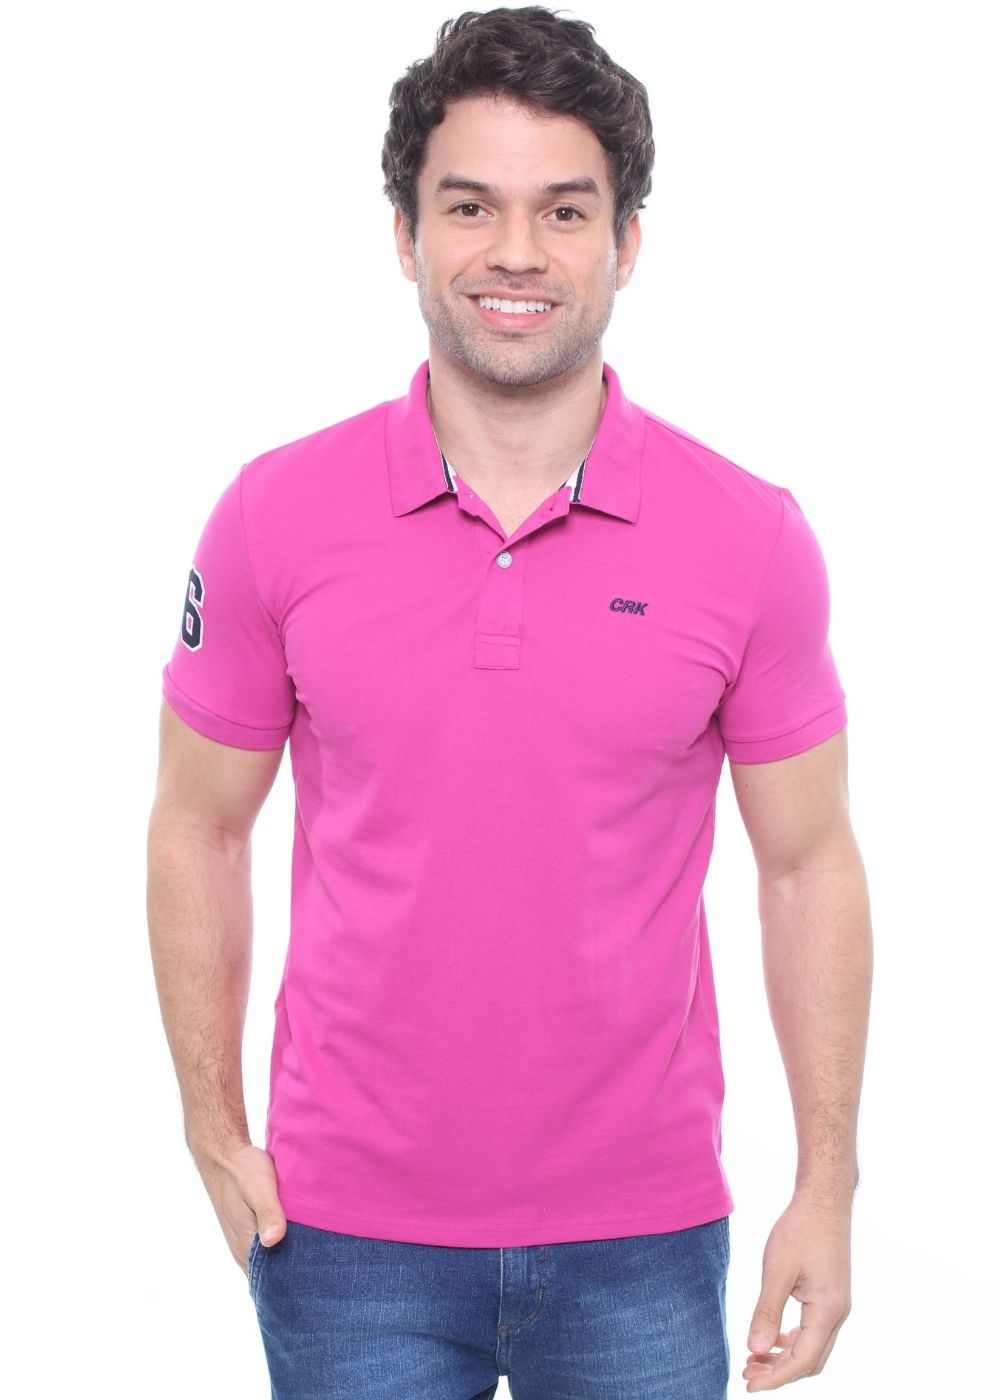 Camisa Gola Polo Piquet Bordada Crocker - 47173